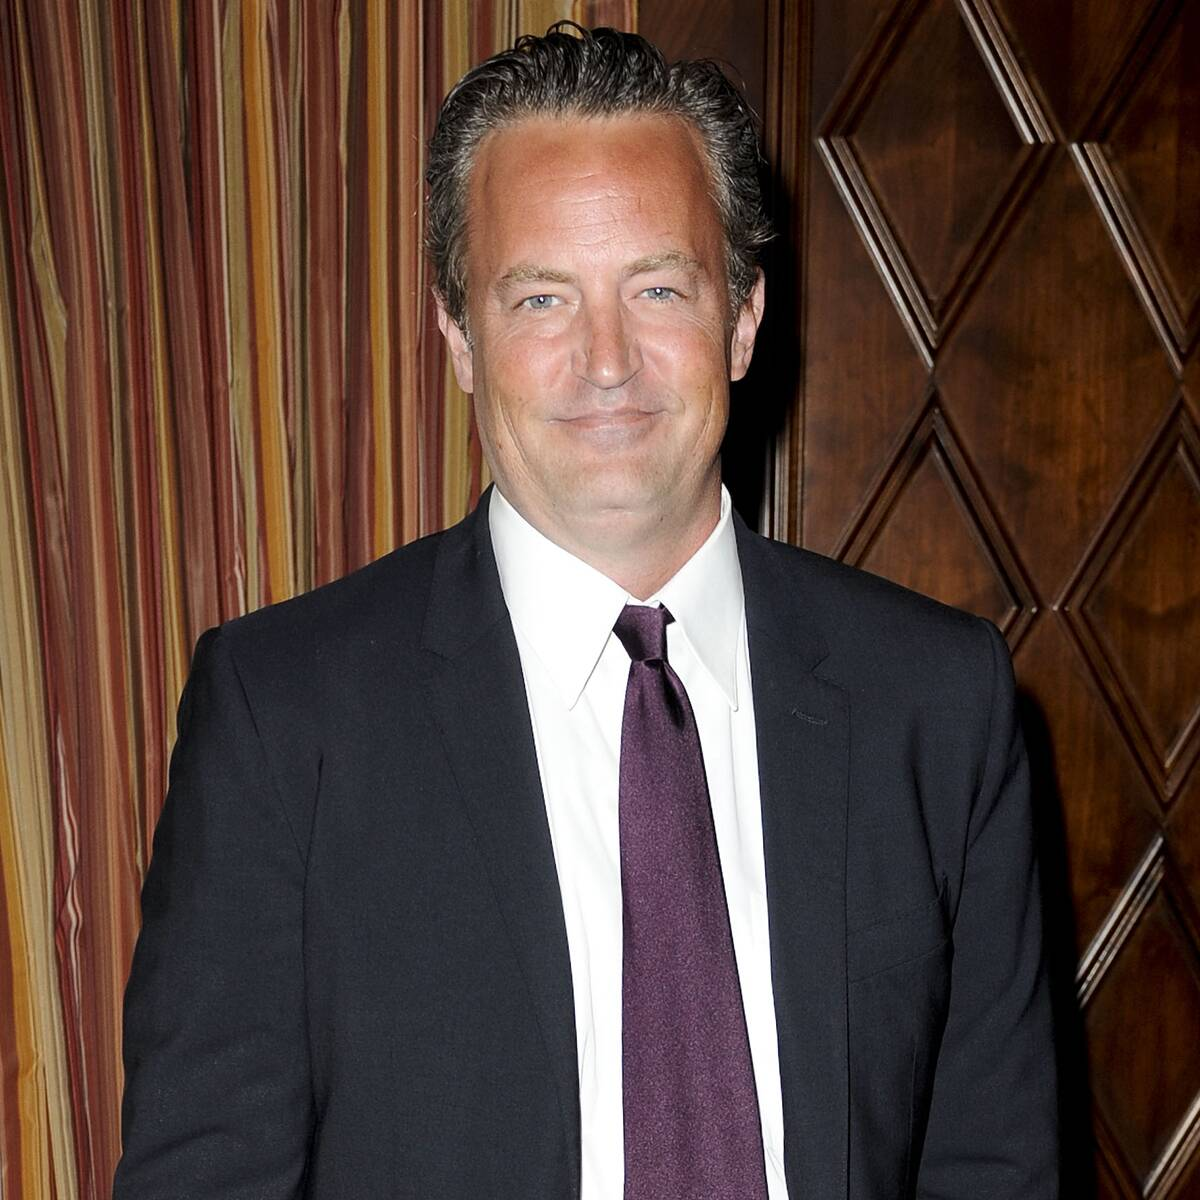 """Matthew Perry Is All Smiles in New Instagram Photo as He Enjoys """"Happy Days"""""""